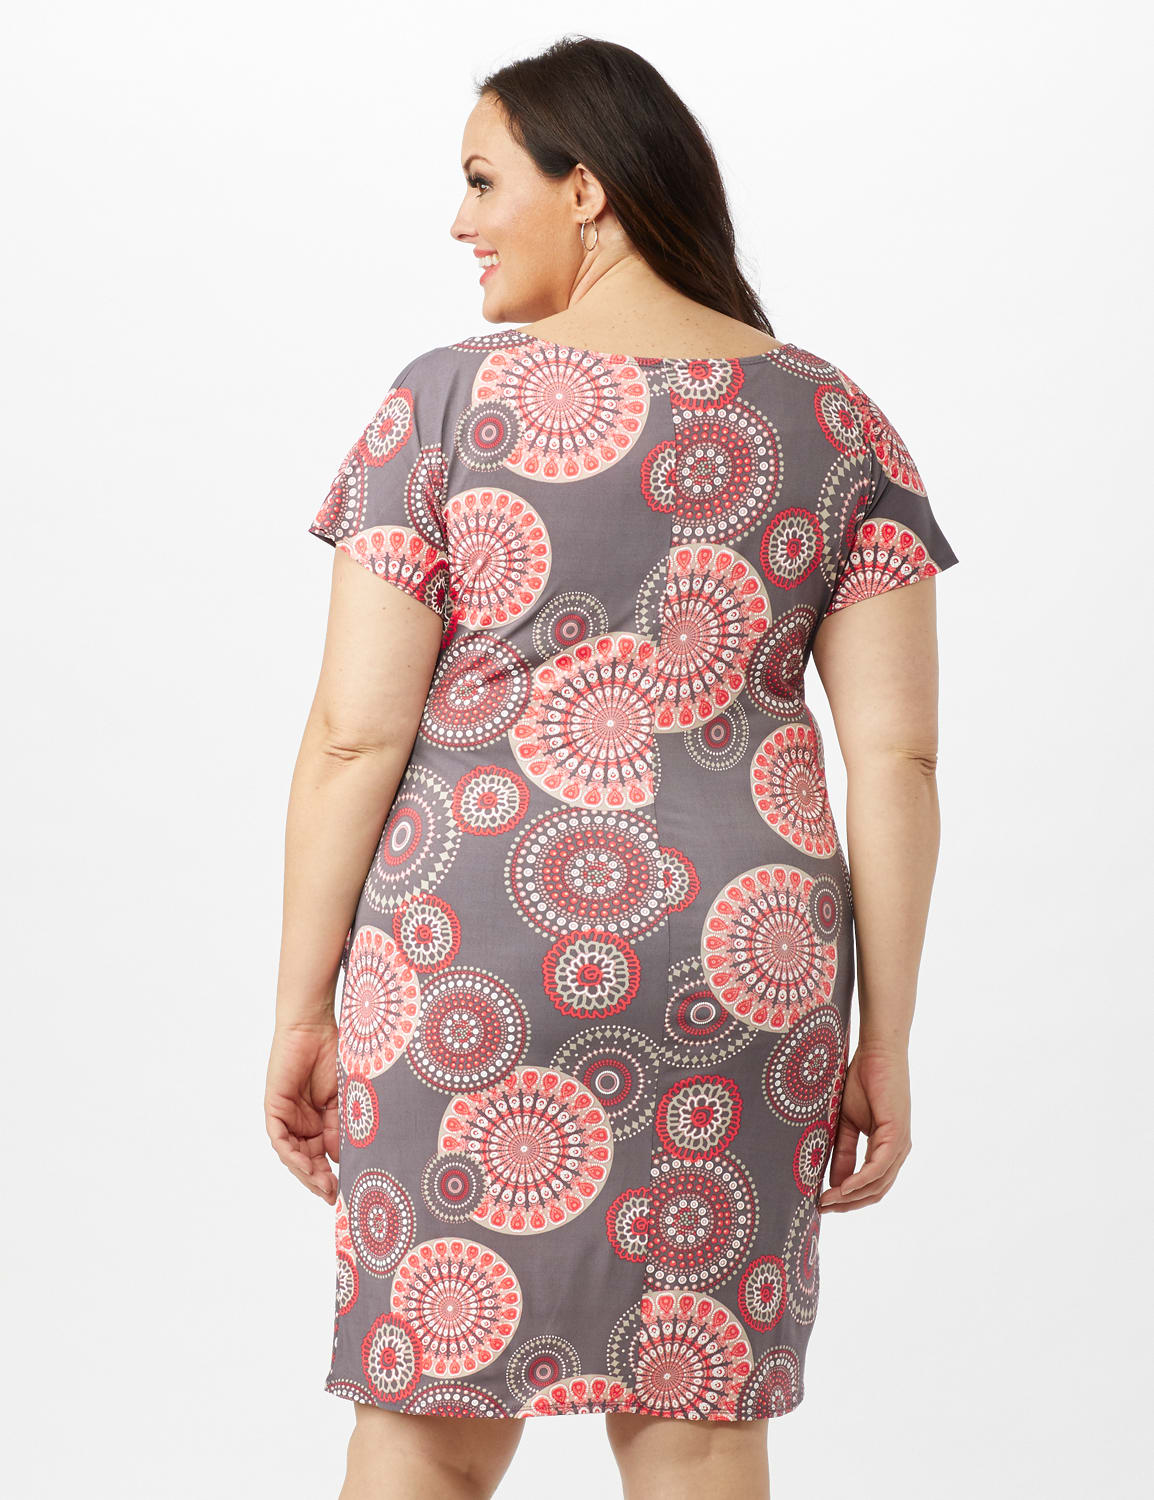 Cap Sleeve Side Tie Faux Wrap Medallion Print Dress - Grey/Coral - Back